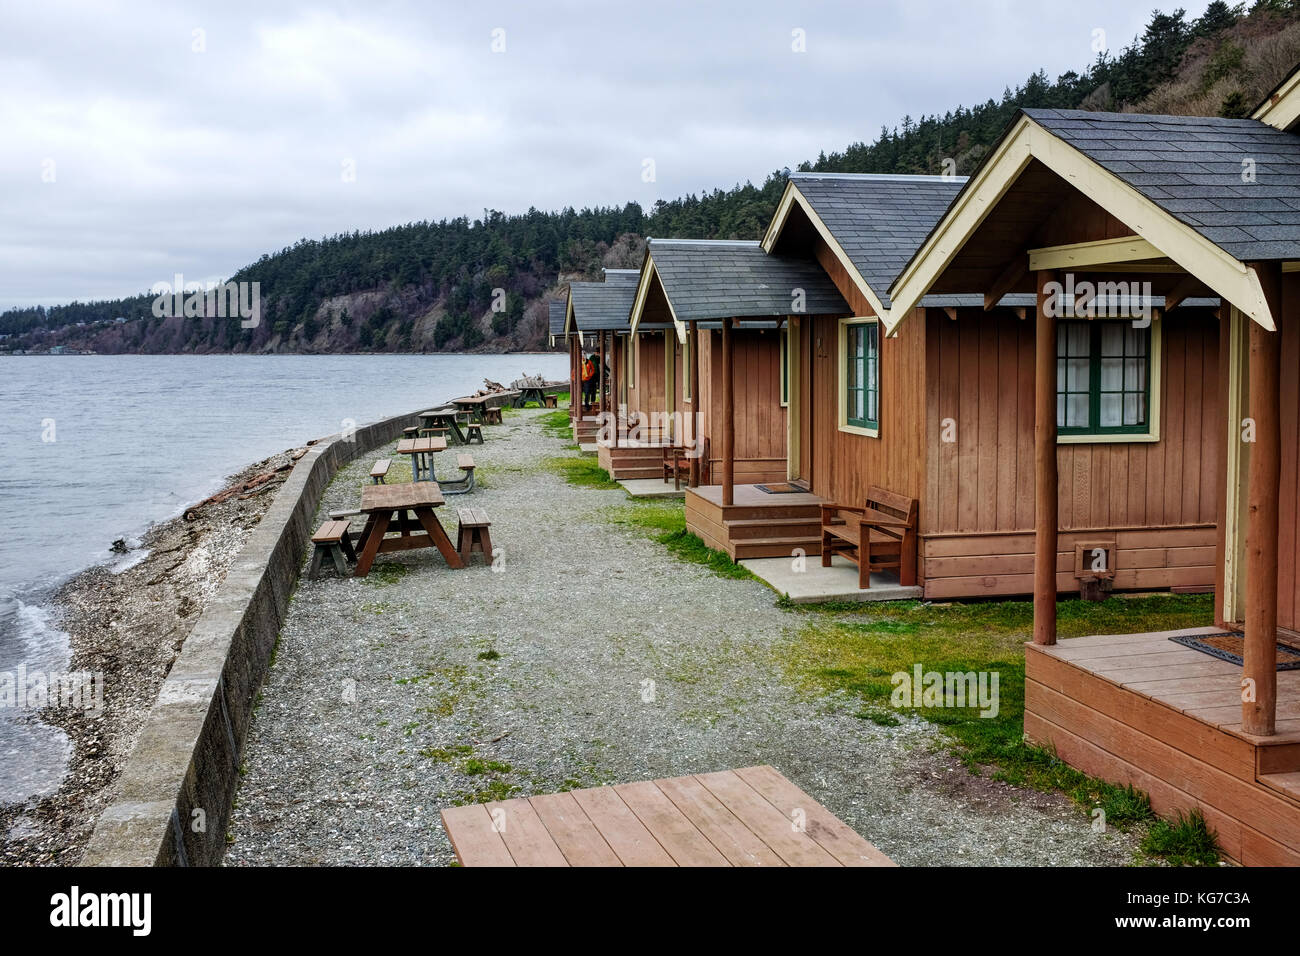 washington to rivers rent in vacation rentals run comfy cabins river s nw